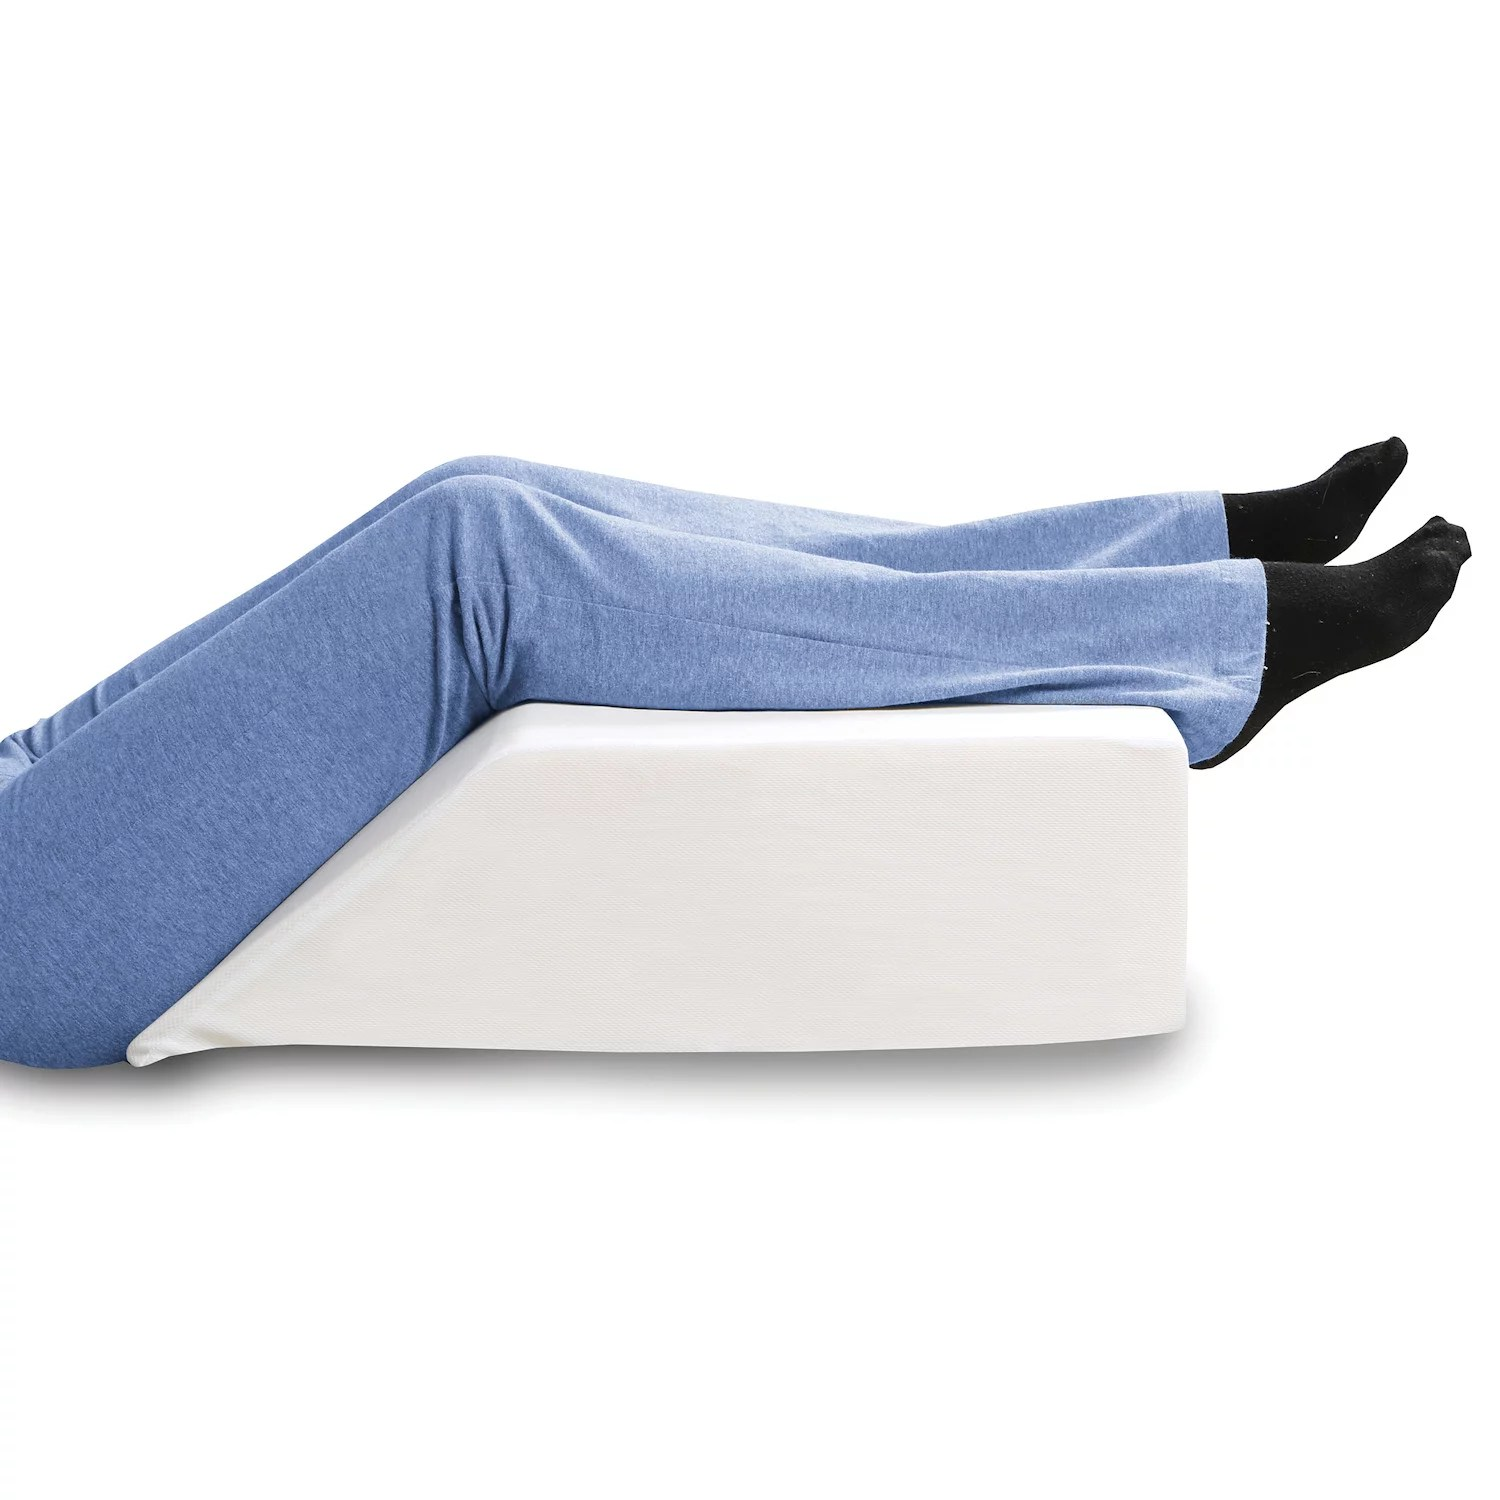 elevated leg wedge support pillow relieves back sciatica pain surgical or injury recovery improves circulation helps reduce leg ankle swelling